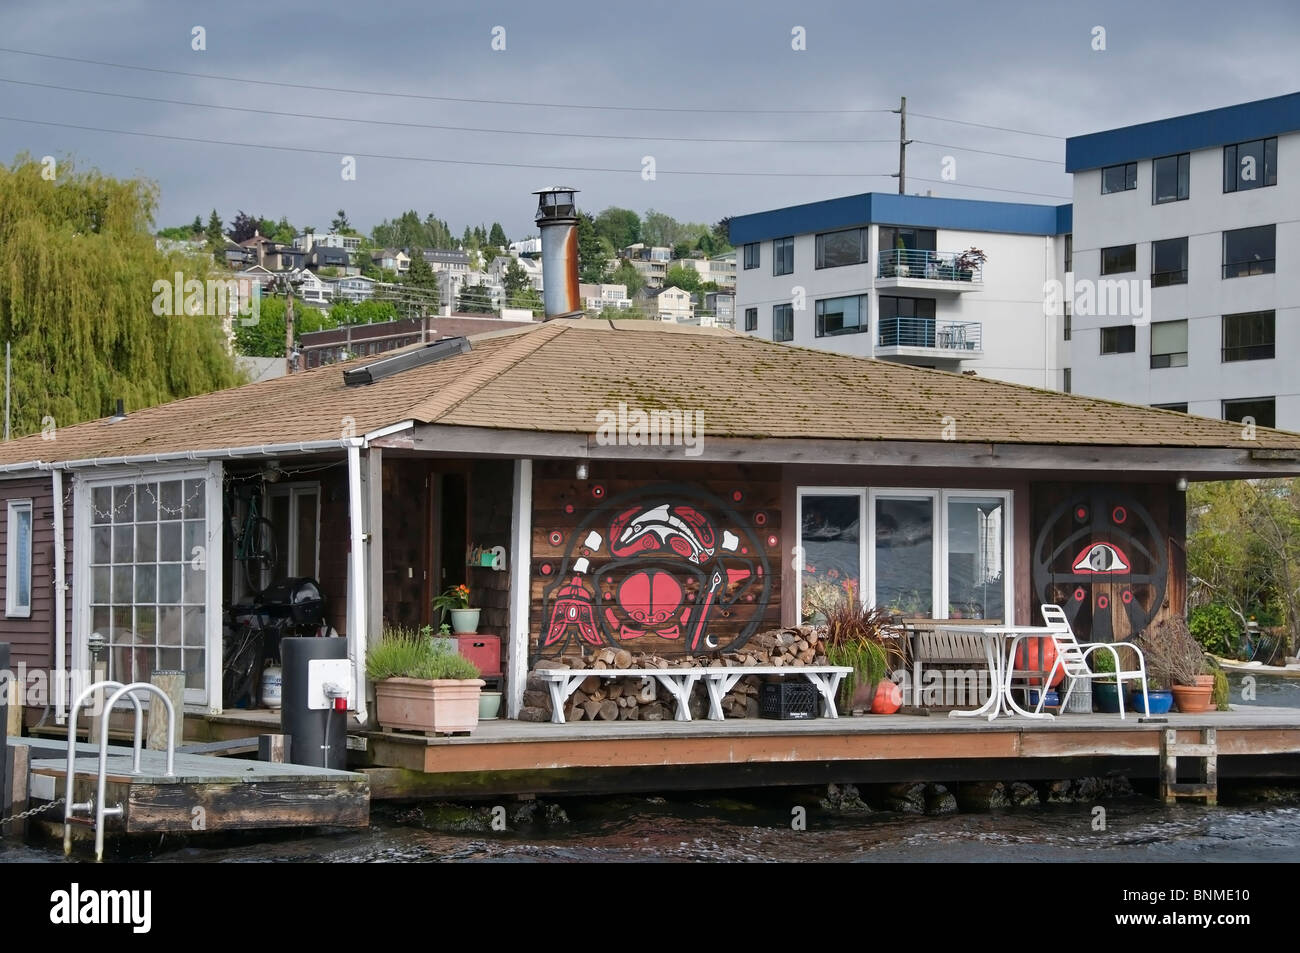 Charming residential houseboat on the water on Lake Union near downtown Seattle, Washington. - Stock Image